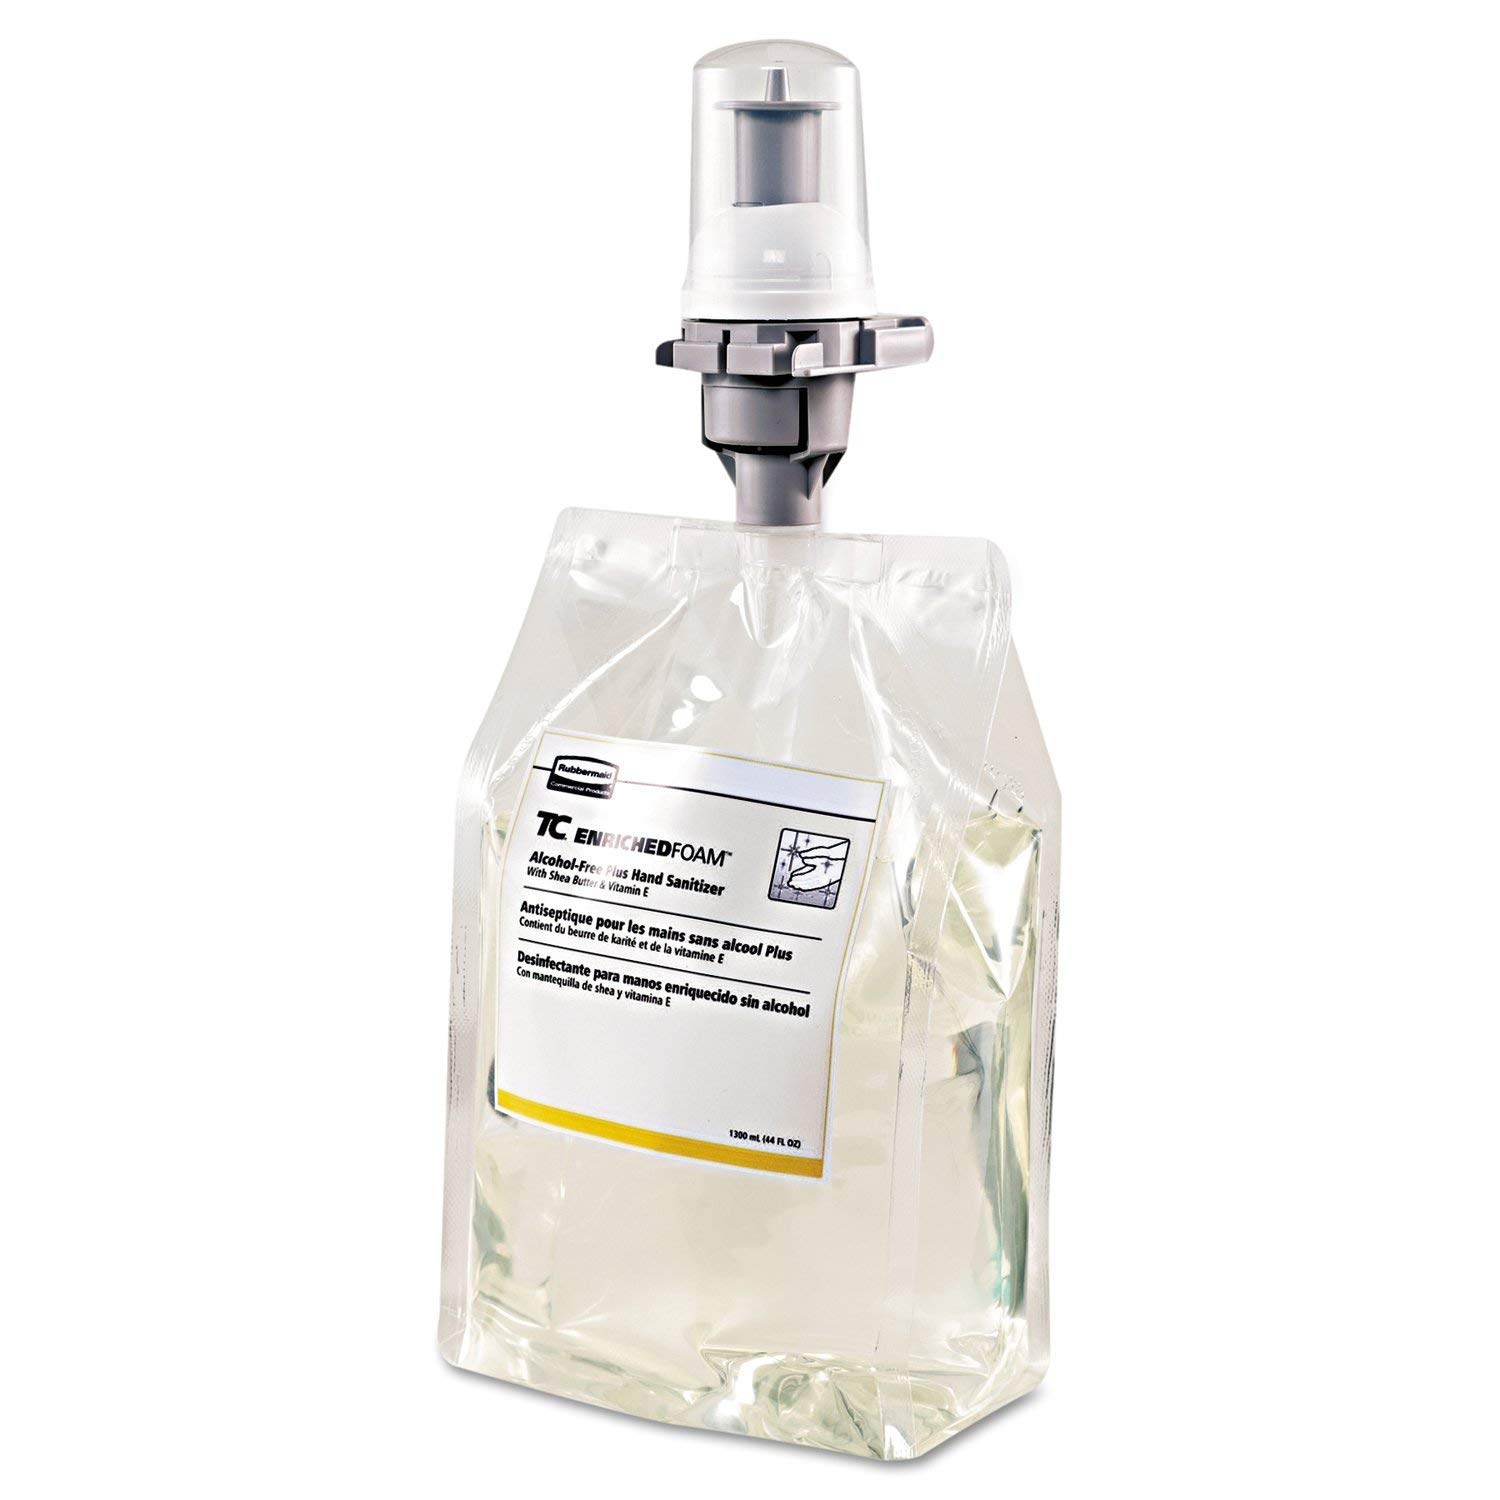 Rubbermaid 3486579 Enriched Foam Alcohol-Free Plus Hand Sanitizer E3, 1300mL Refill (Pack of 3)